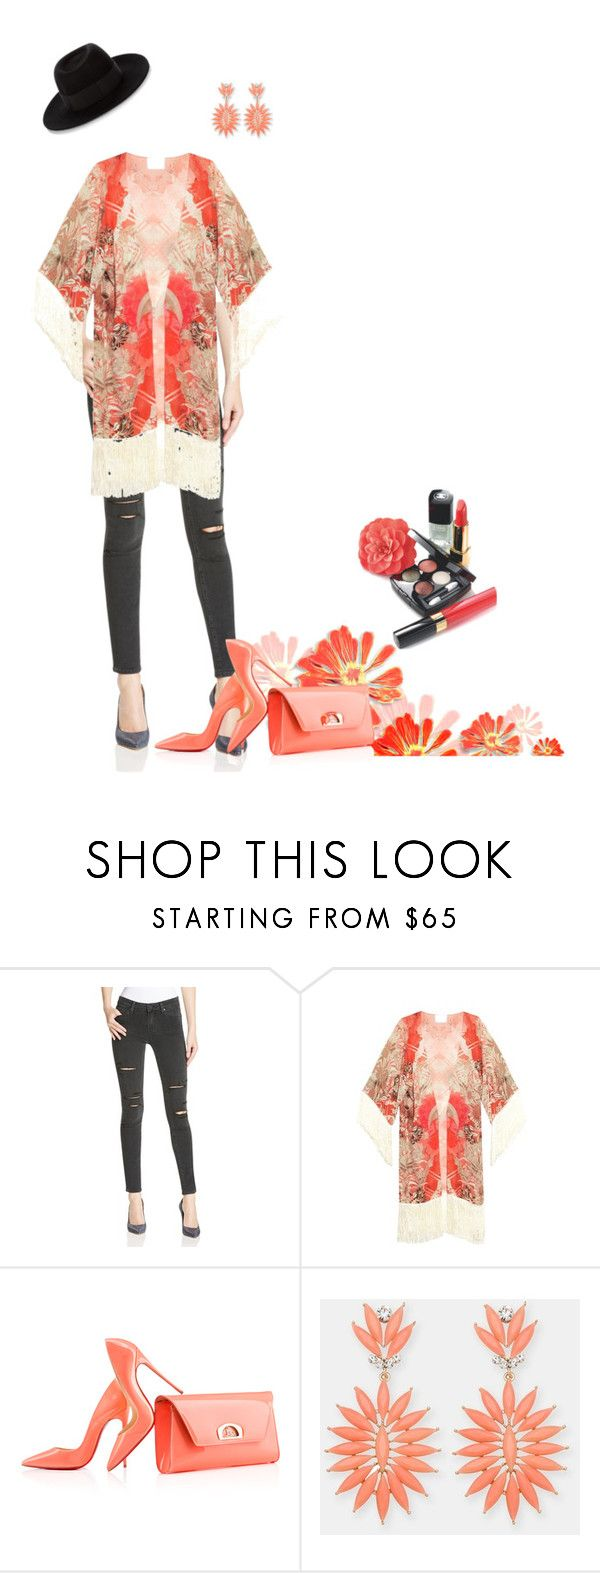 """Untitled #79"" by myrealityrehashed ❤ liked on Polyvore featuring Paige Denim, Athena Procopiou, Christian Louboutin, Lady Fox, Maison Michel, Chanel and kimonos"